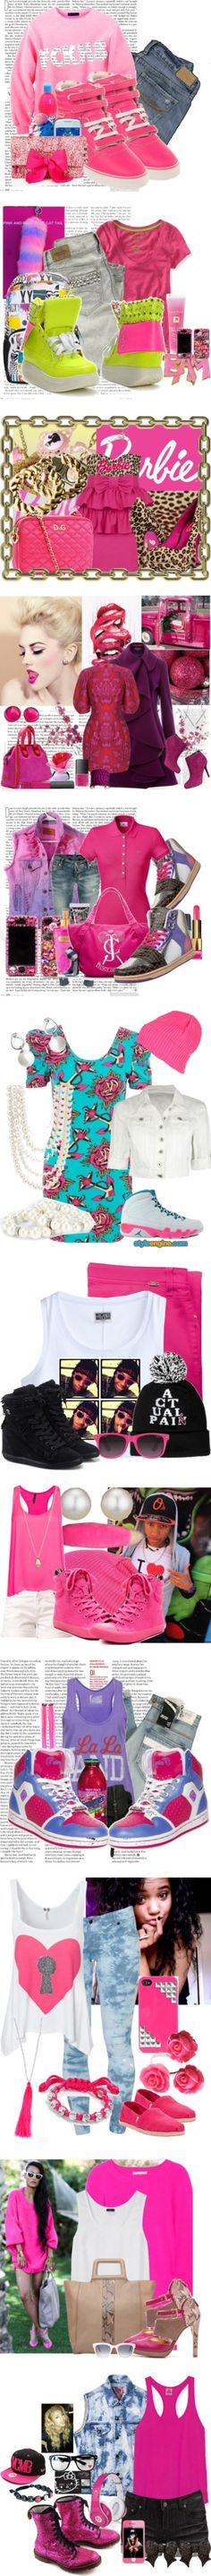 """""""Pink everything !"""" by laymarie ❤ liked on Polyvore"""